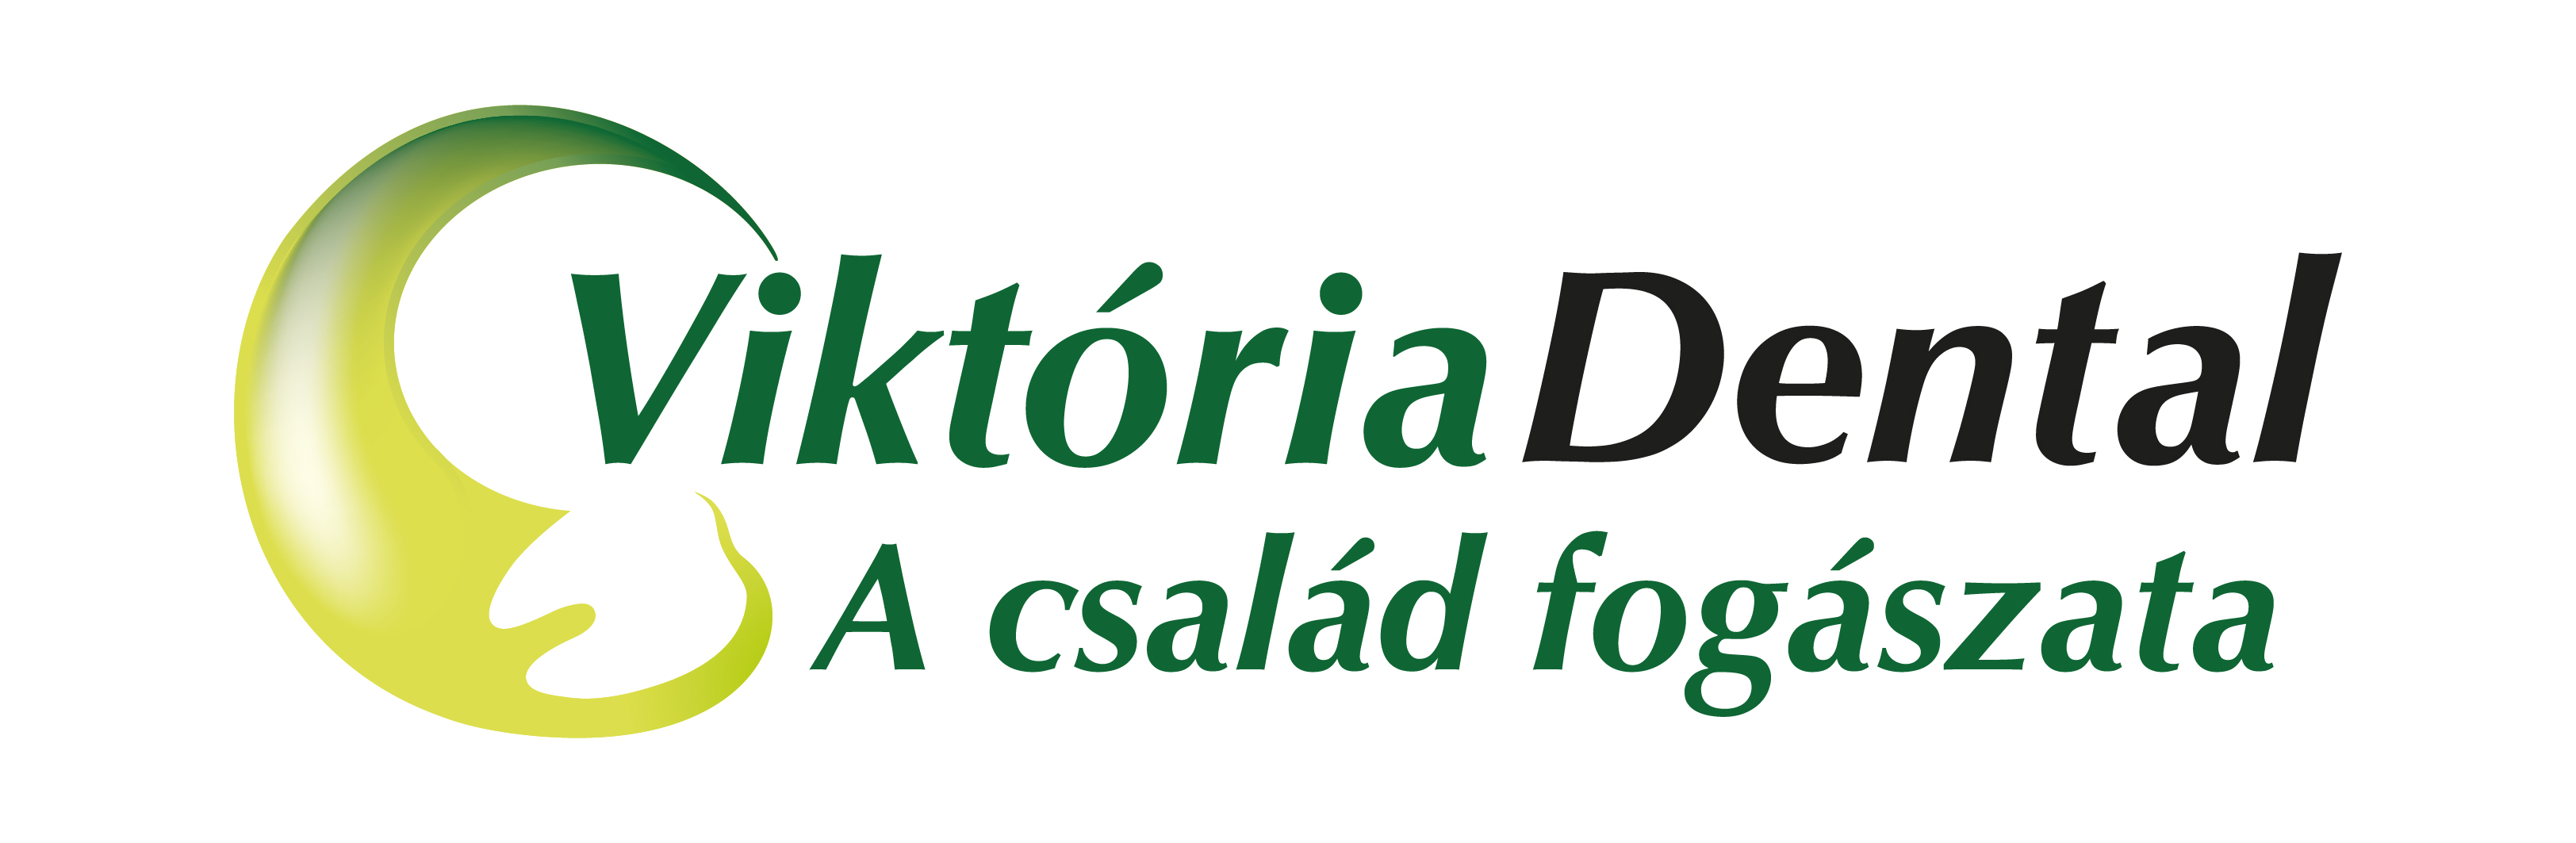 viktoriadental Logo